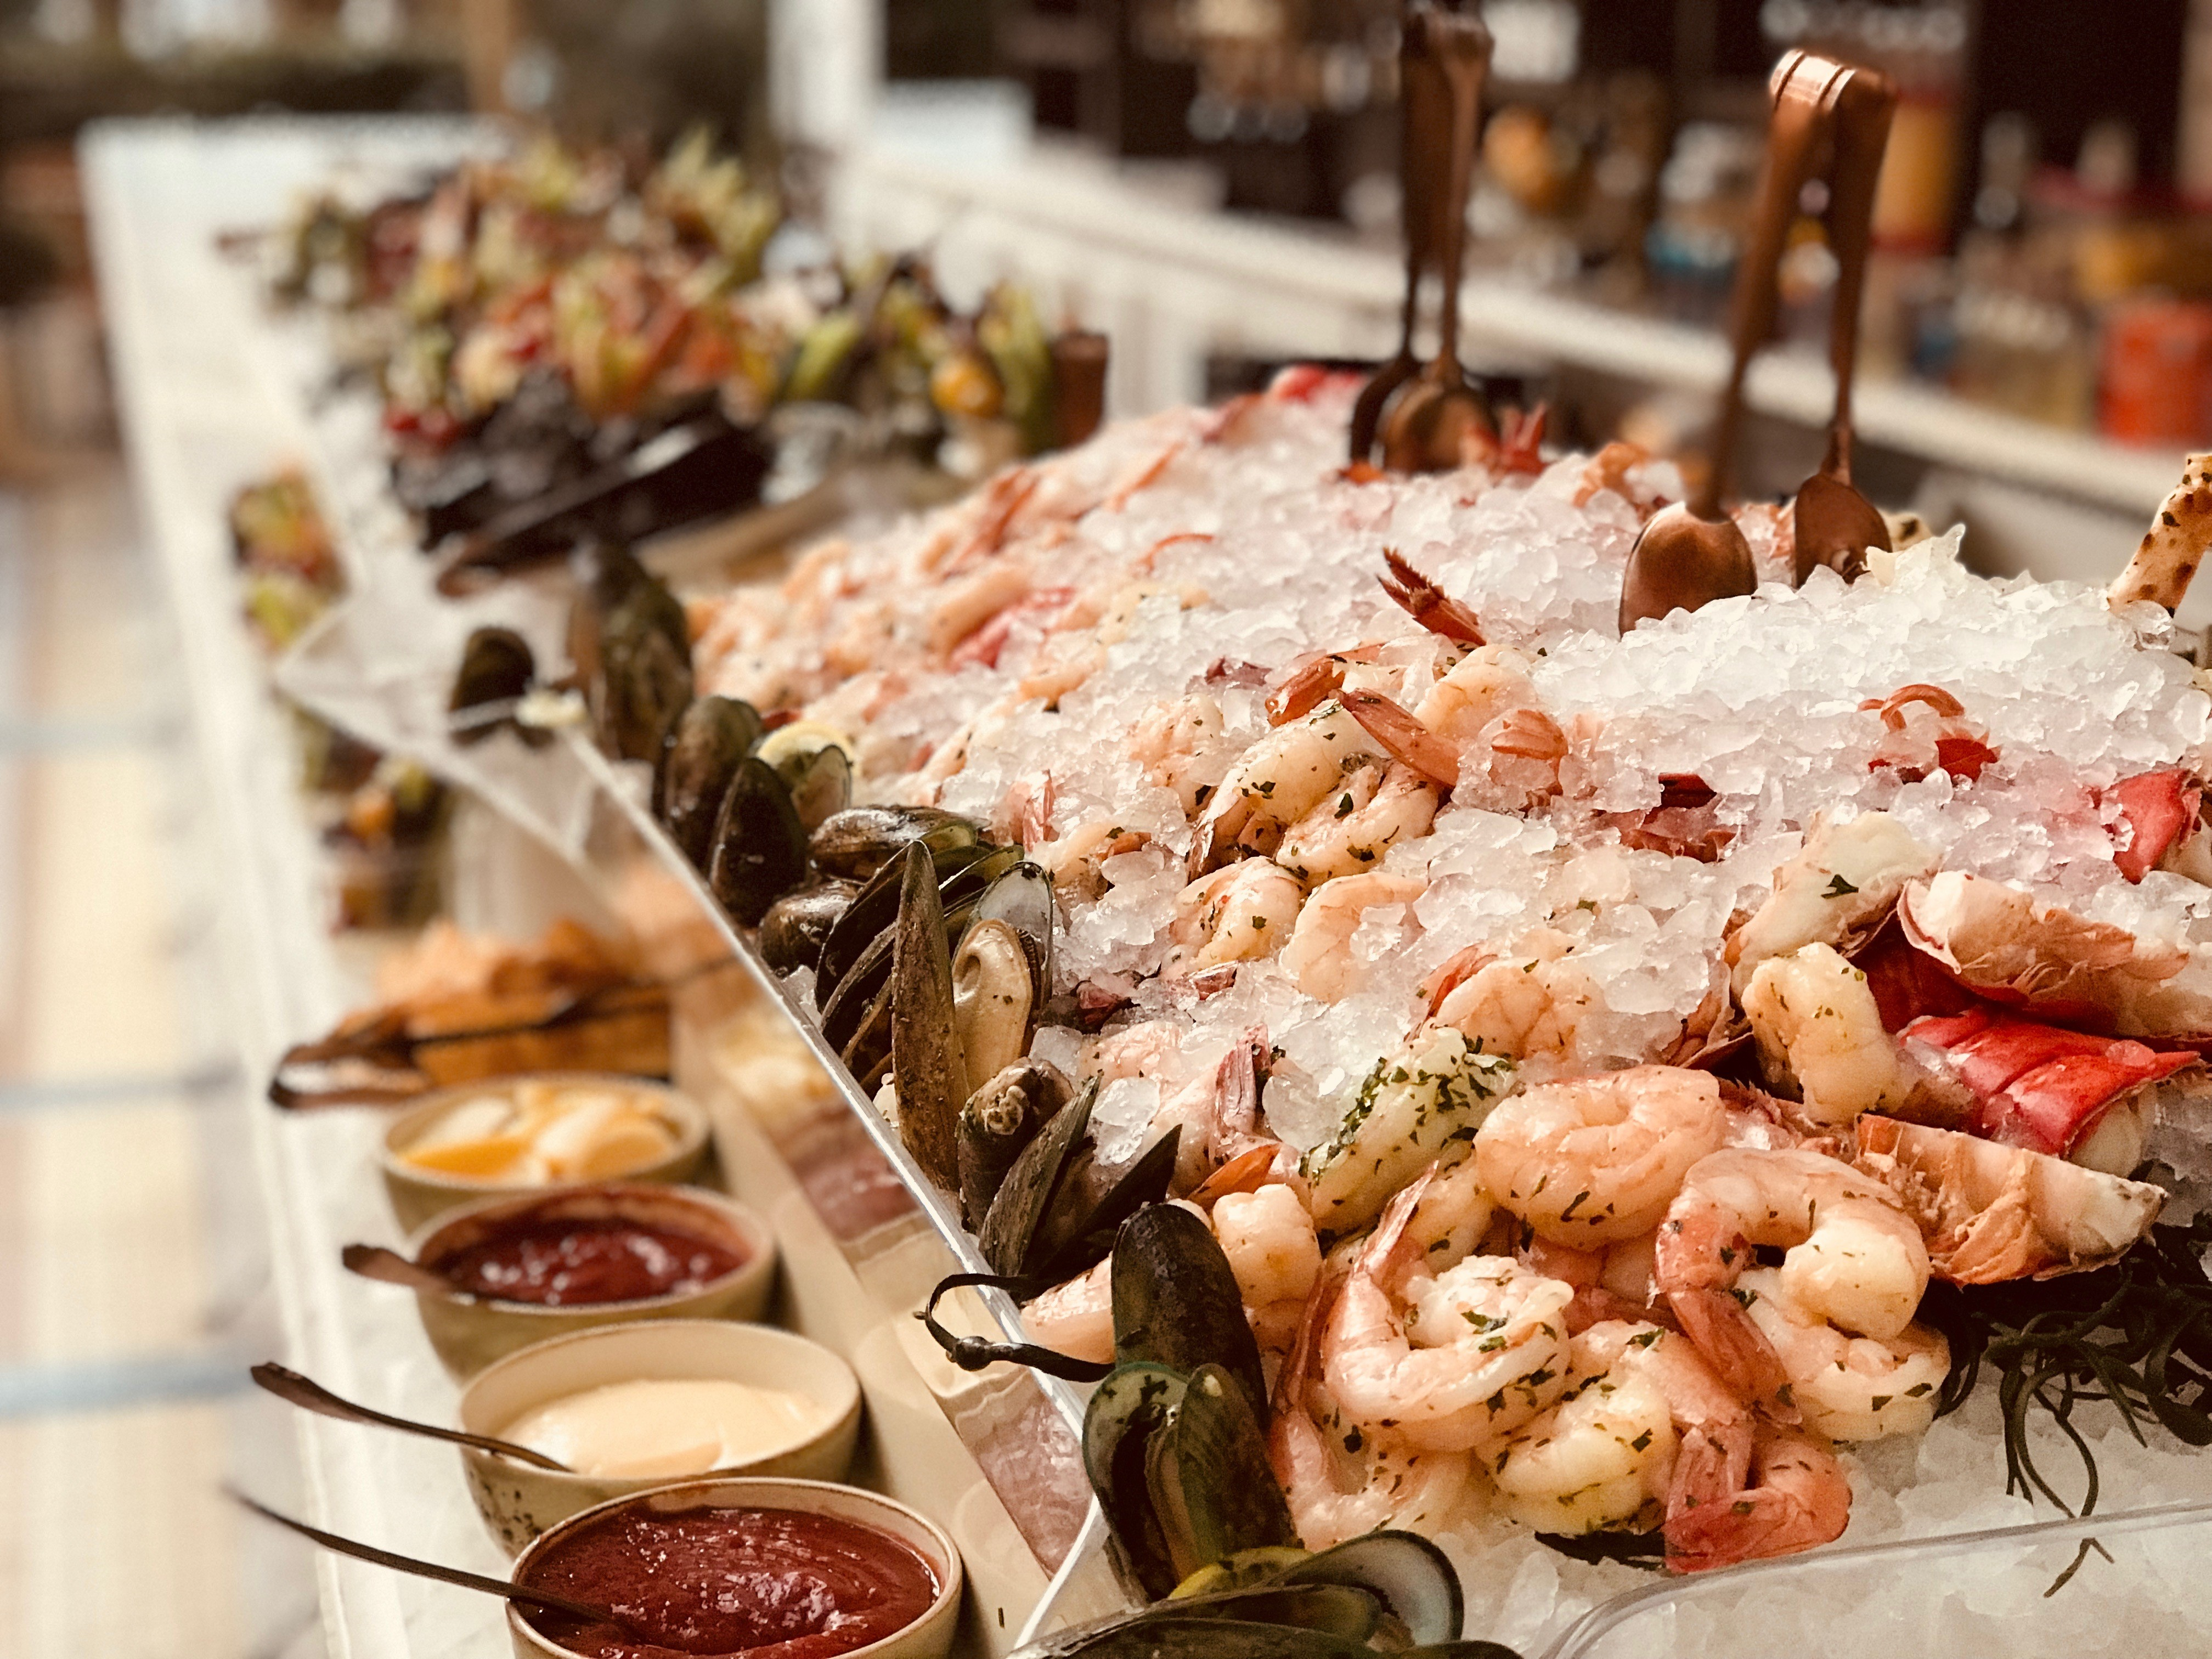 Seafood spread over ice with various dipping sauces